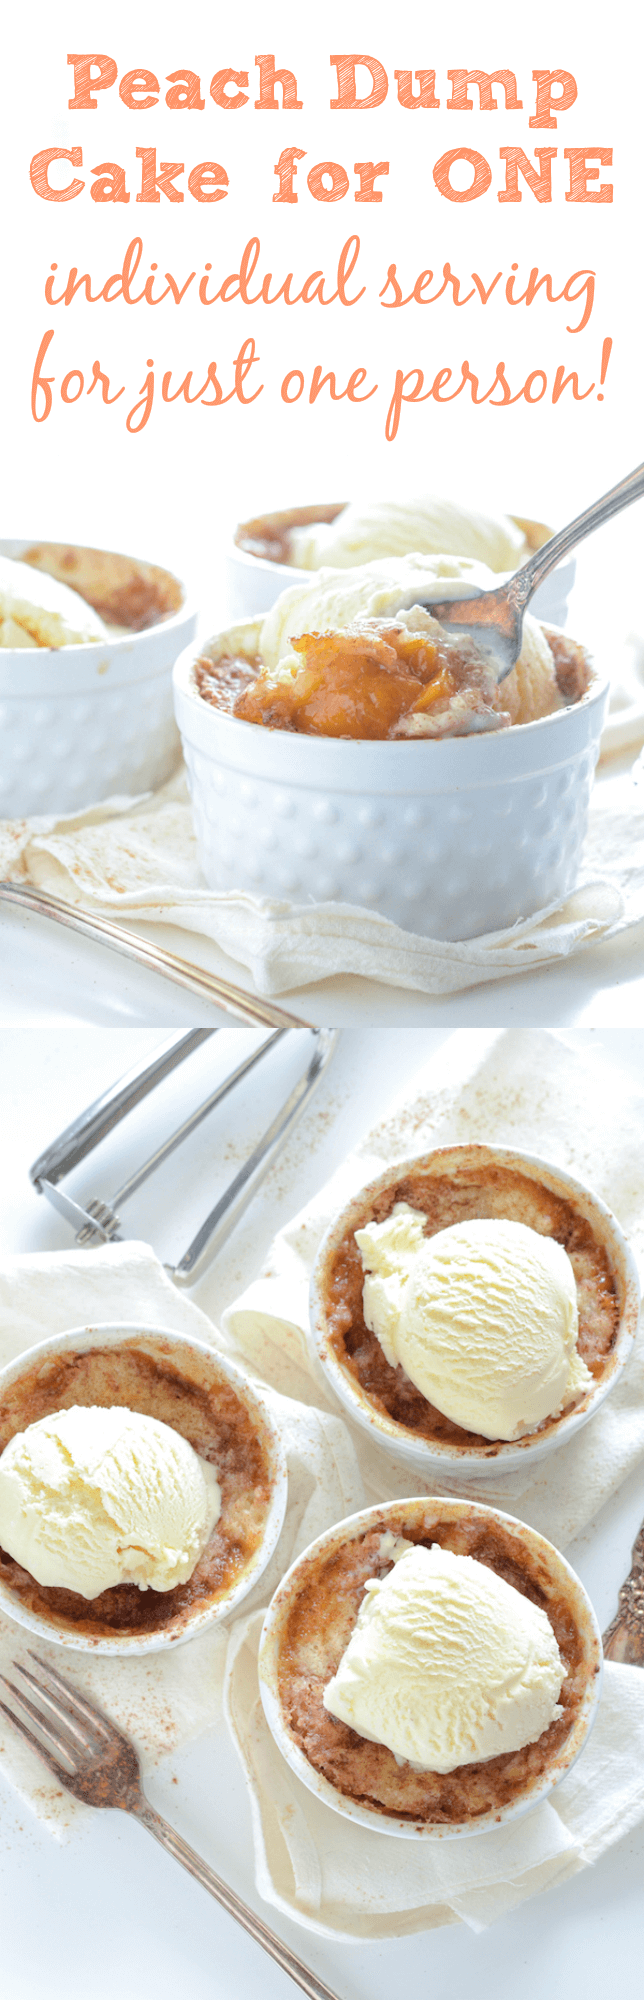 Peach Dump Cake For One! Perfect peach dump cake that you can make for one person - or for six!